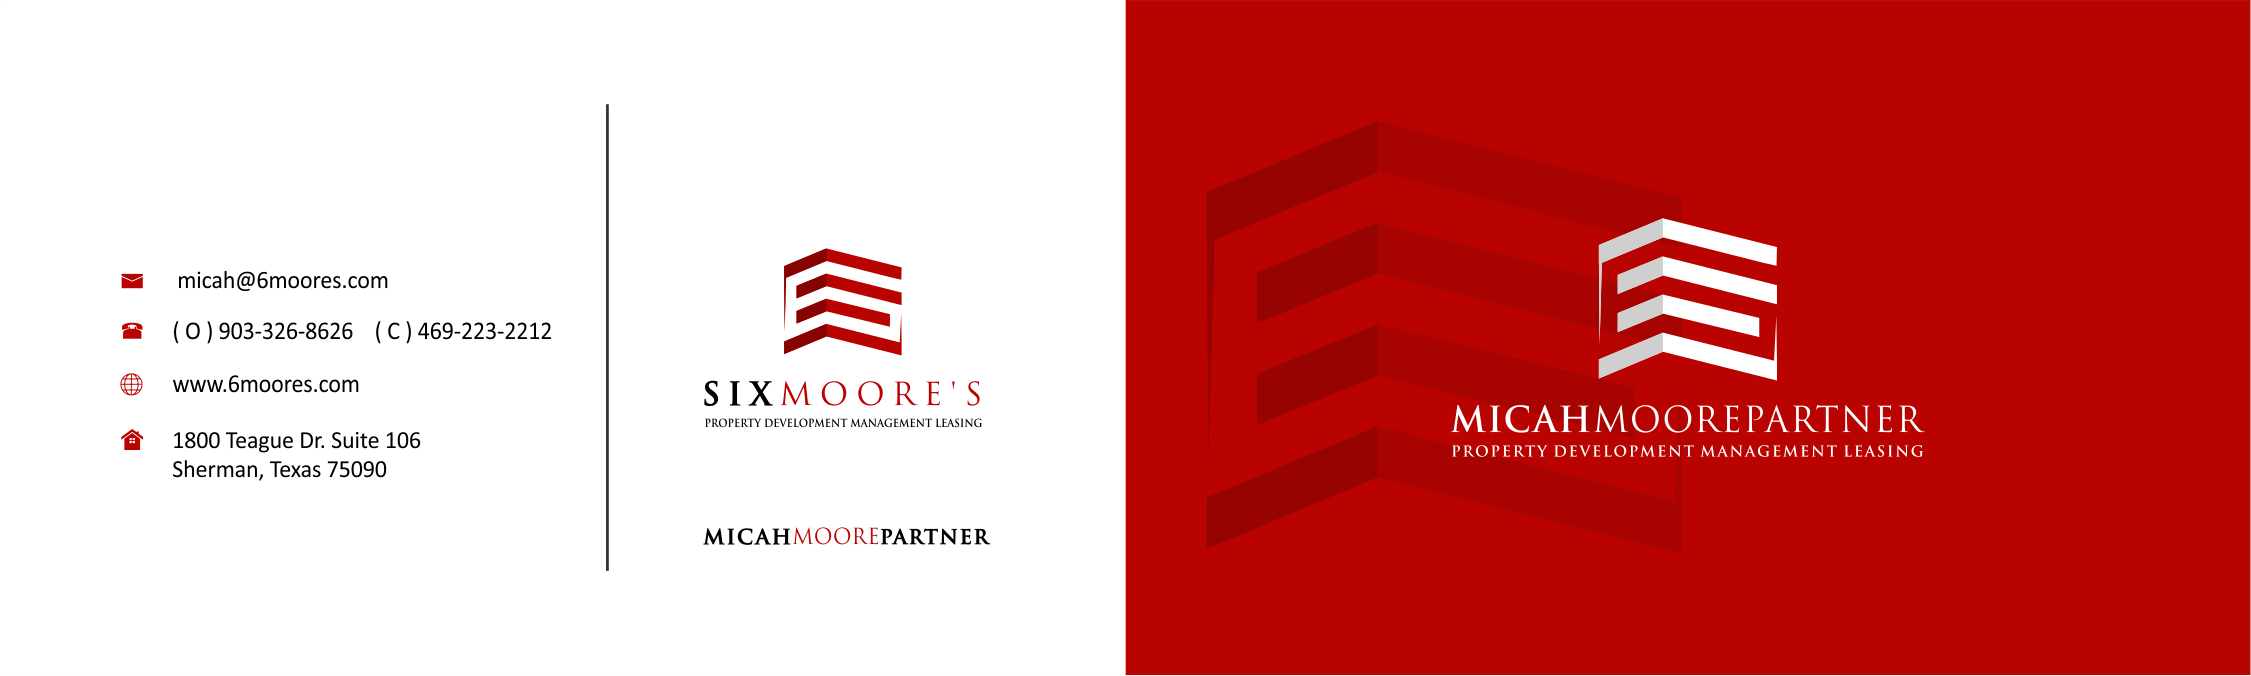 sixmoore's business cards